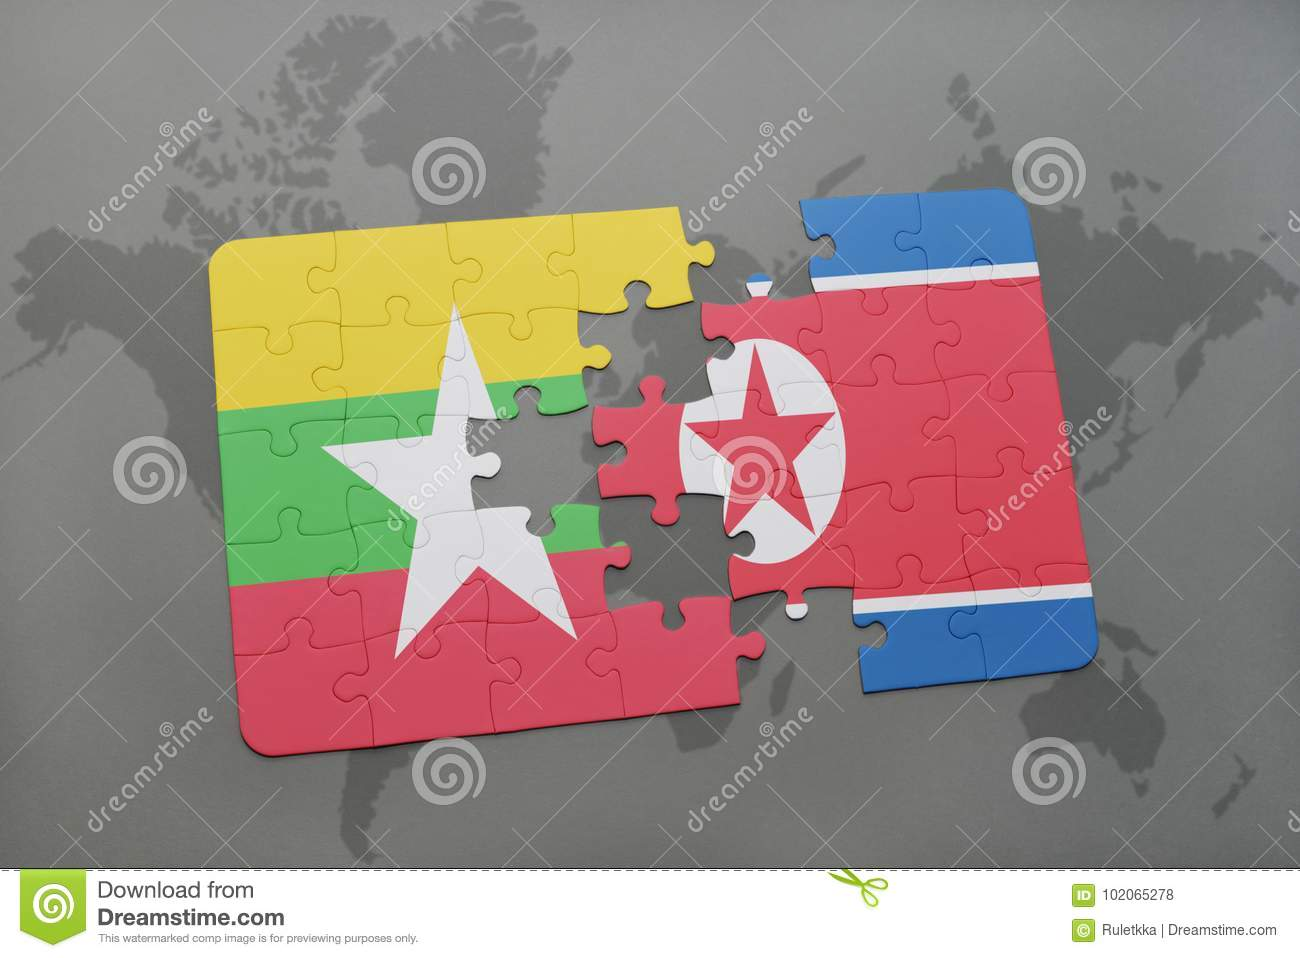 Puzzle With The National Flag Of Myanmar And North Korea On A World ...